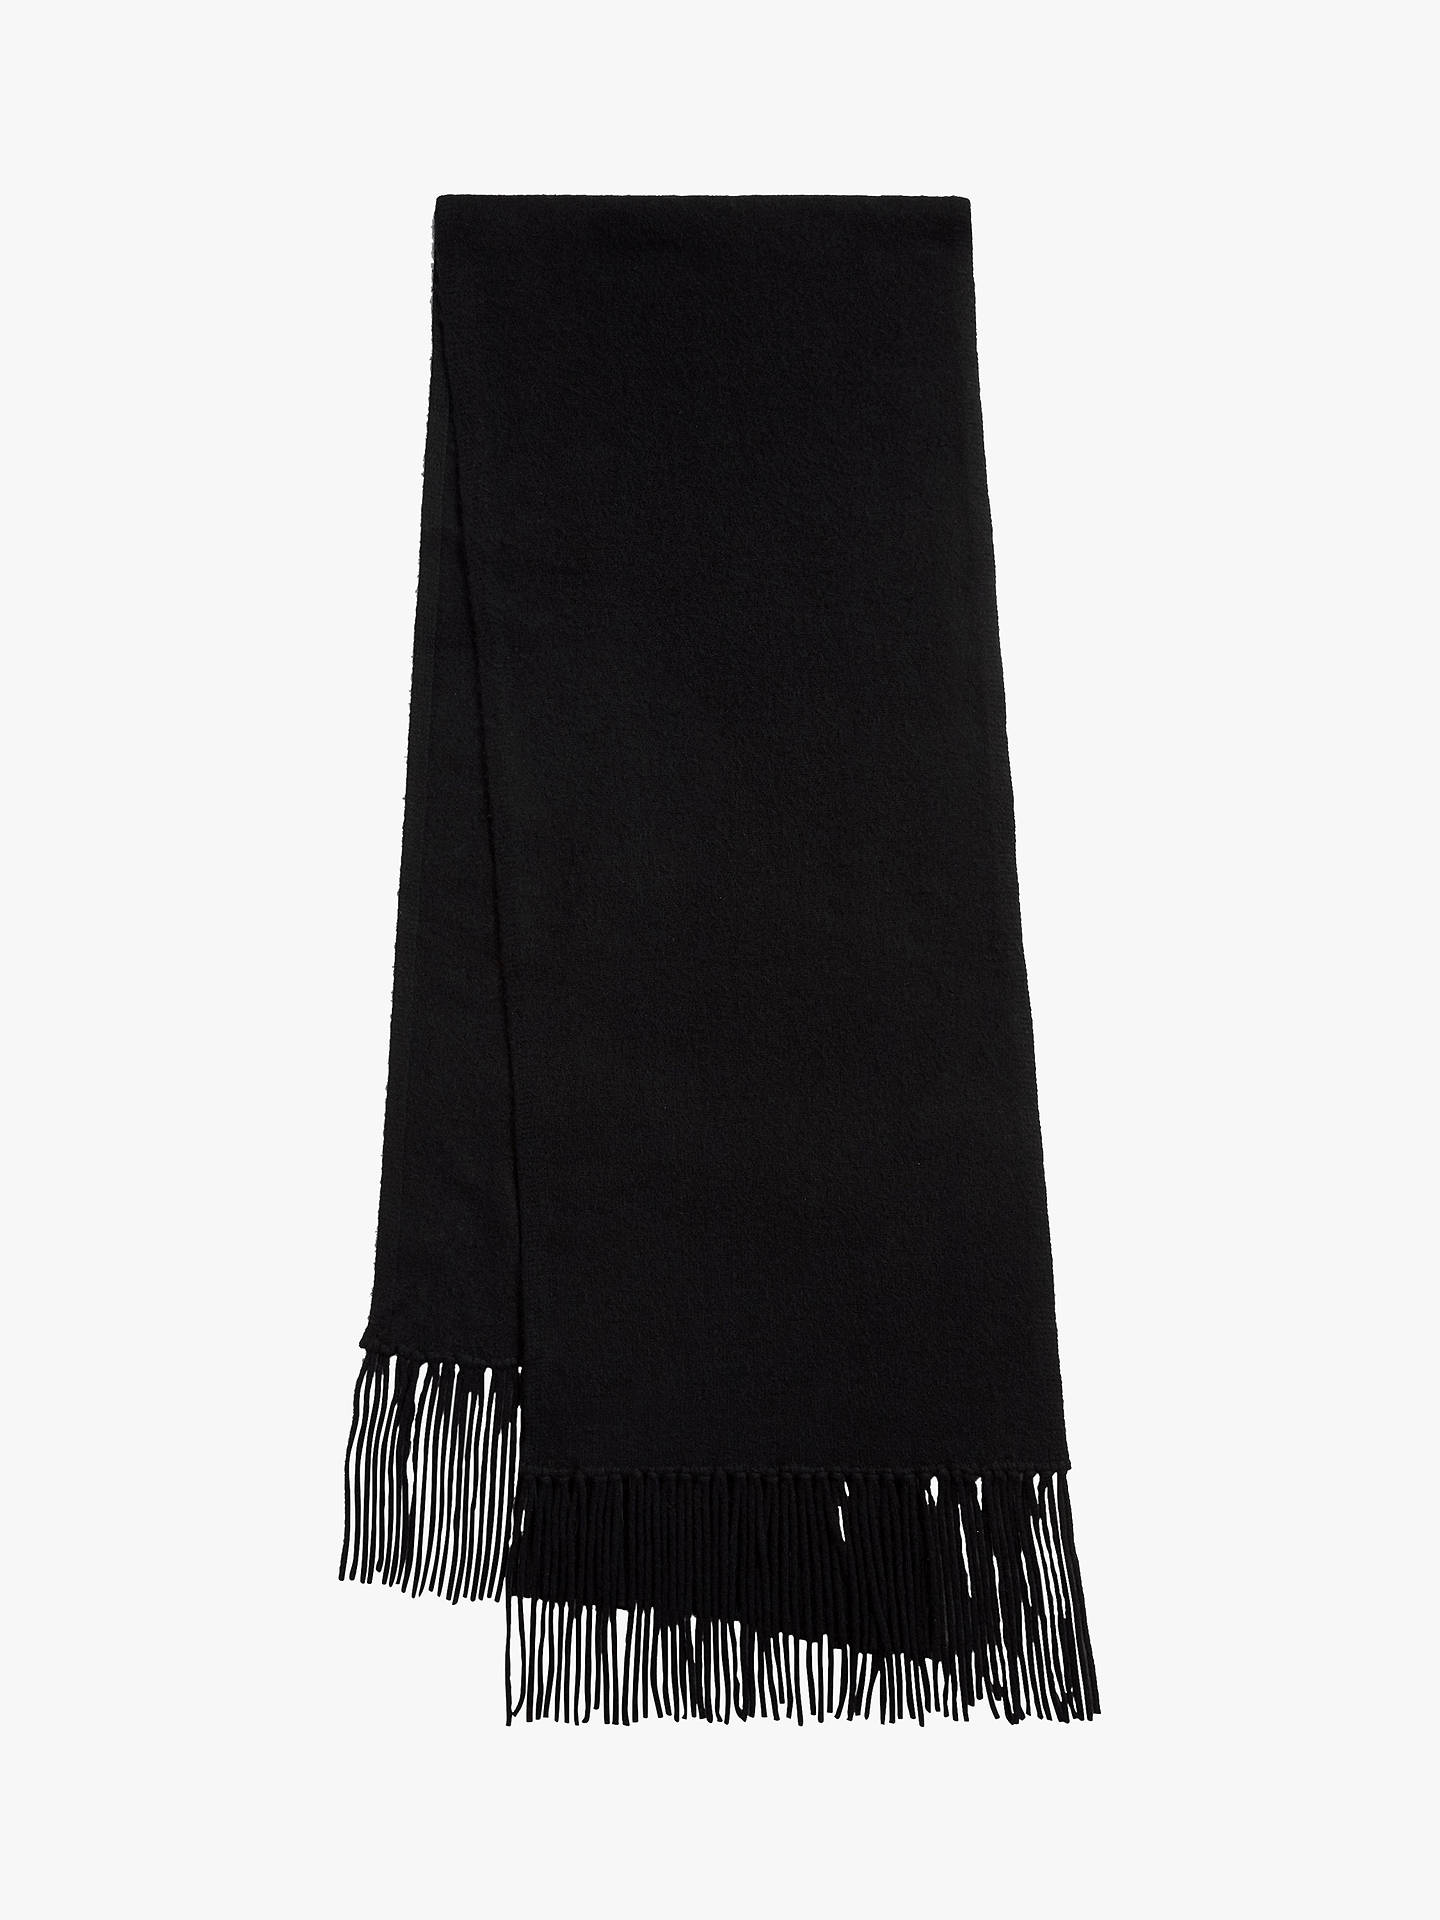 BuyAllSaints Boiled Wool Scarf, Black, One Size Online at johnlewis.com